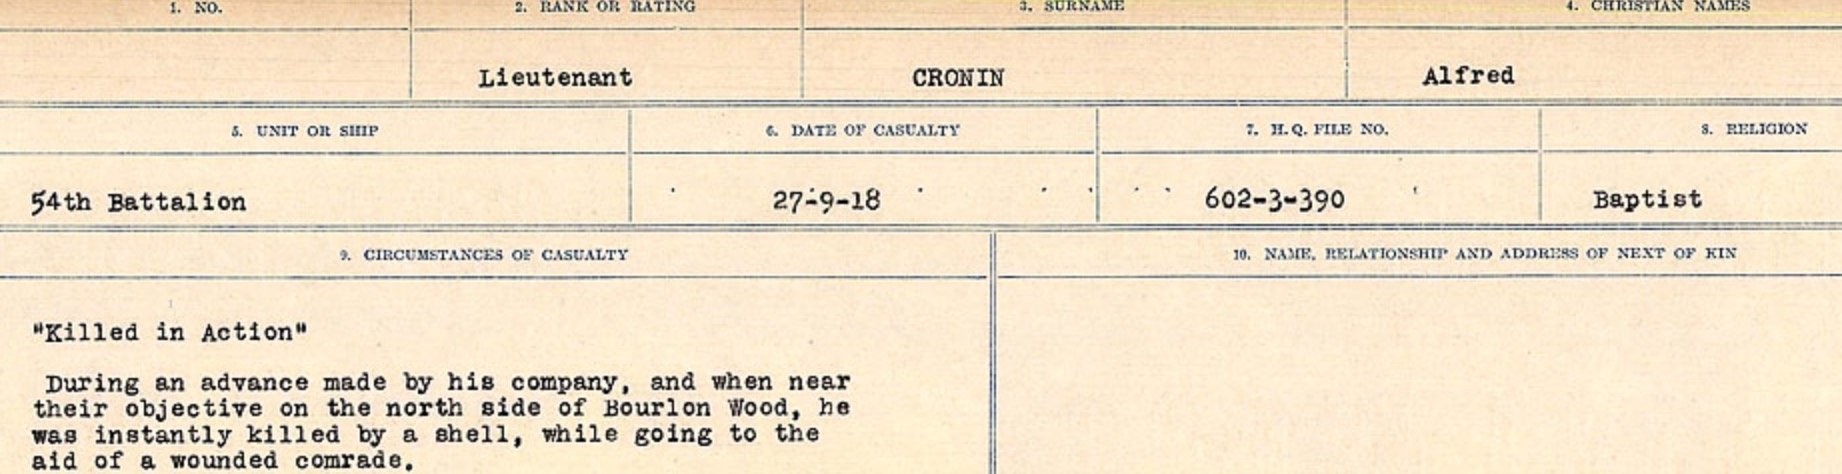 Circumstances of death registers– Source: Library and Archives Canada. CIRCUMSTANCES OF DEATH REGISTERS, FIRST WORLD WAR Surnames: CRABB TO CROSSLAND Microform Sequence 24; Volume Number 31829_B016733. Reference RG150, 1992-93/314, 168. Page 657 of 788.